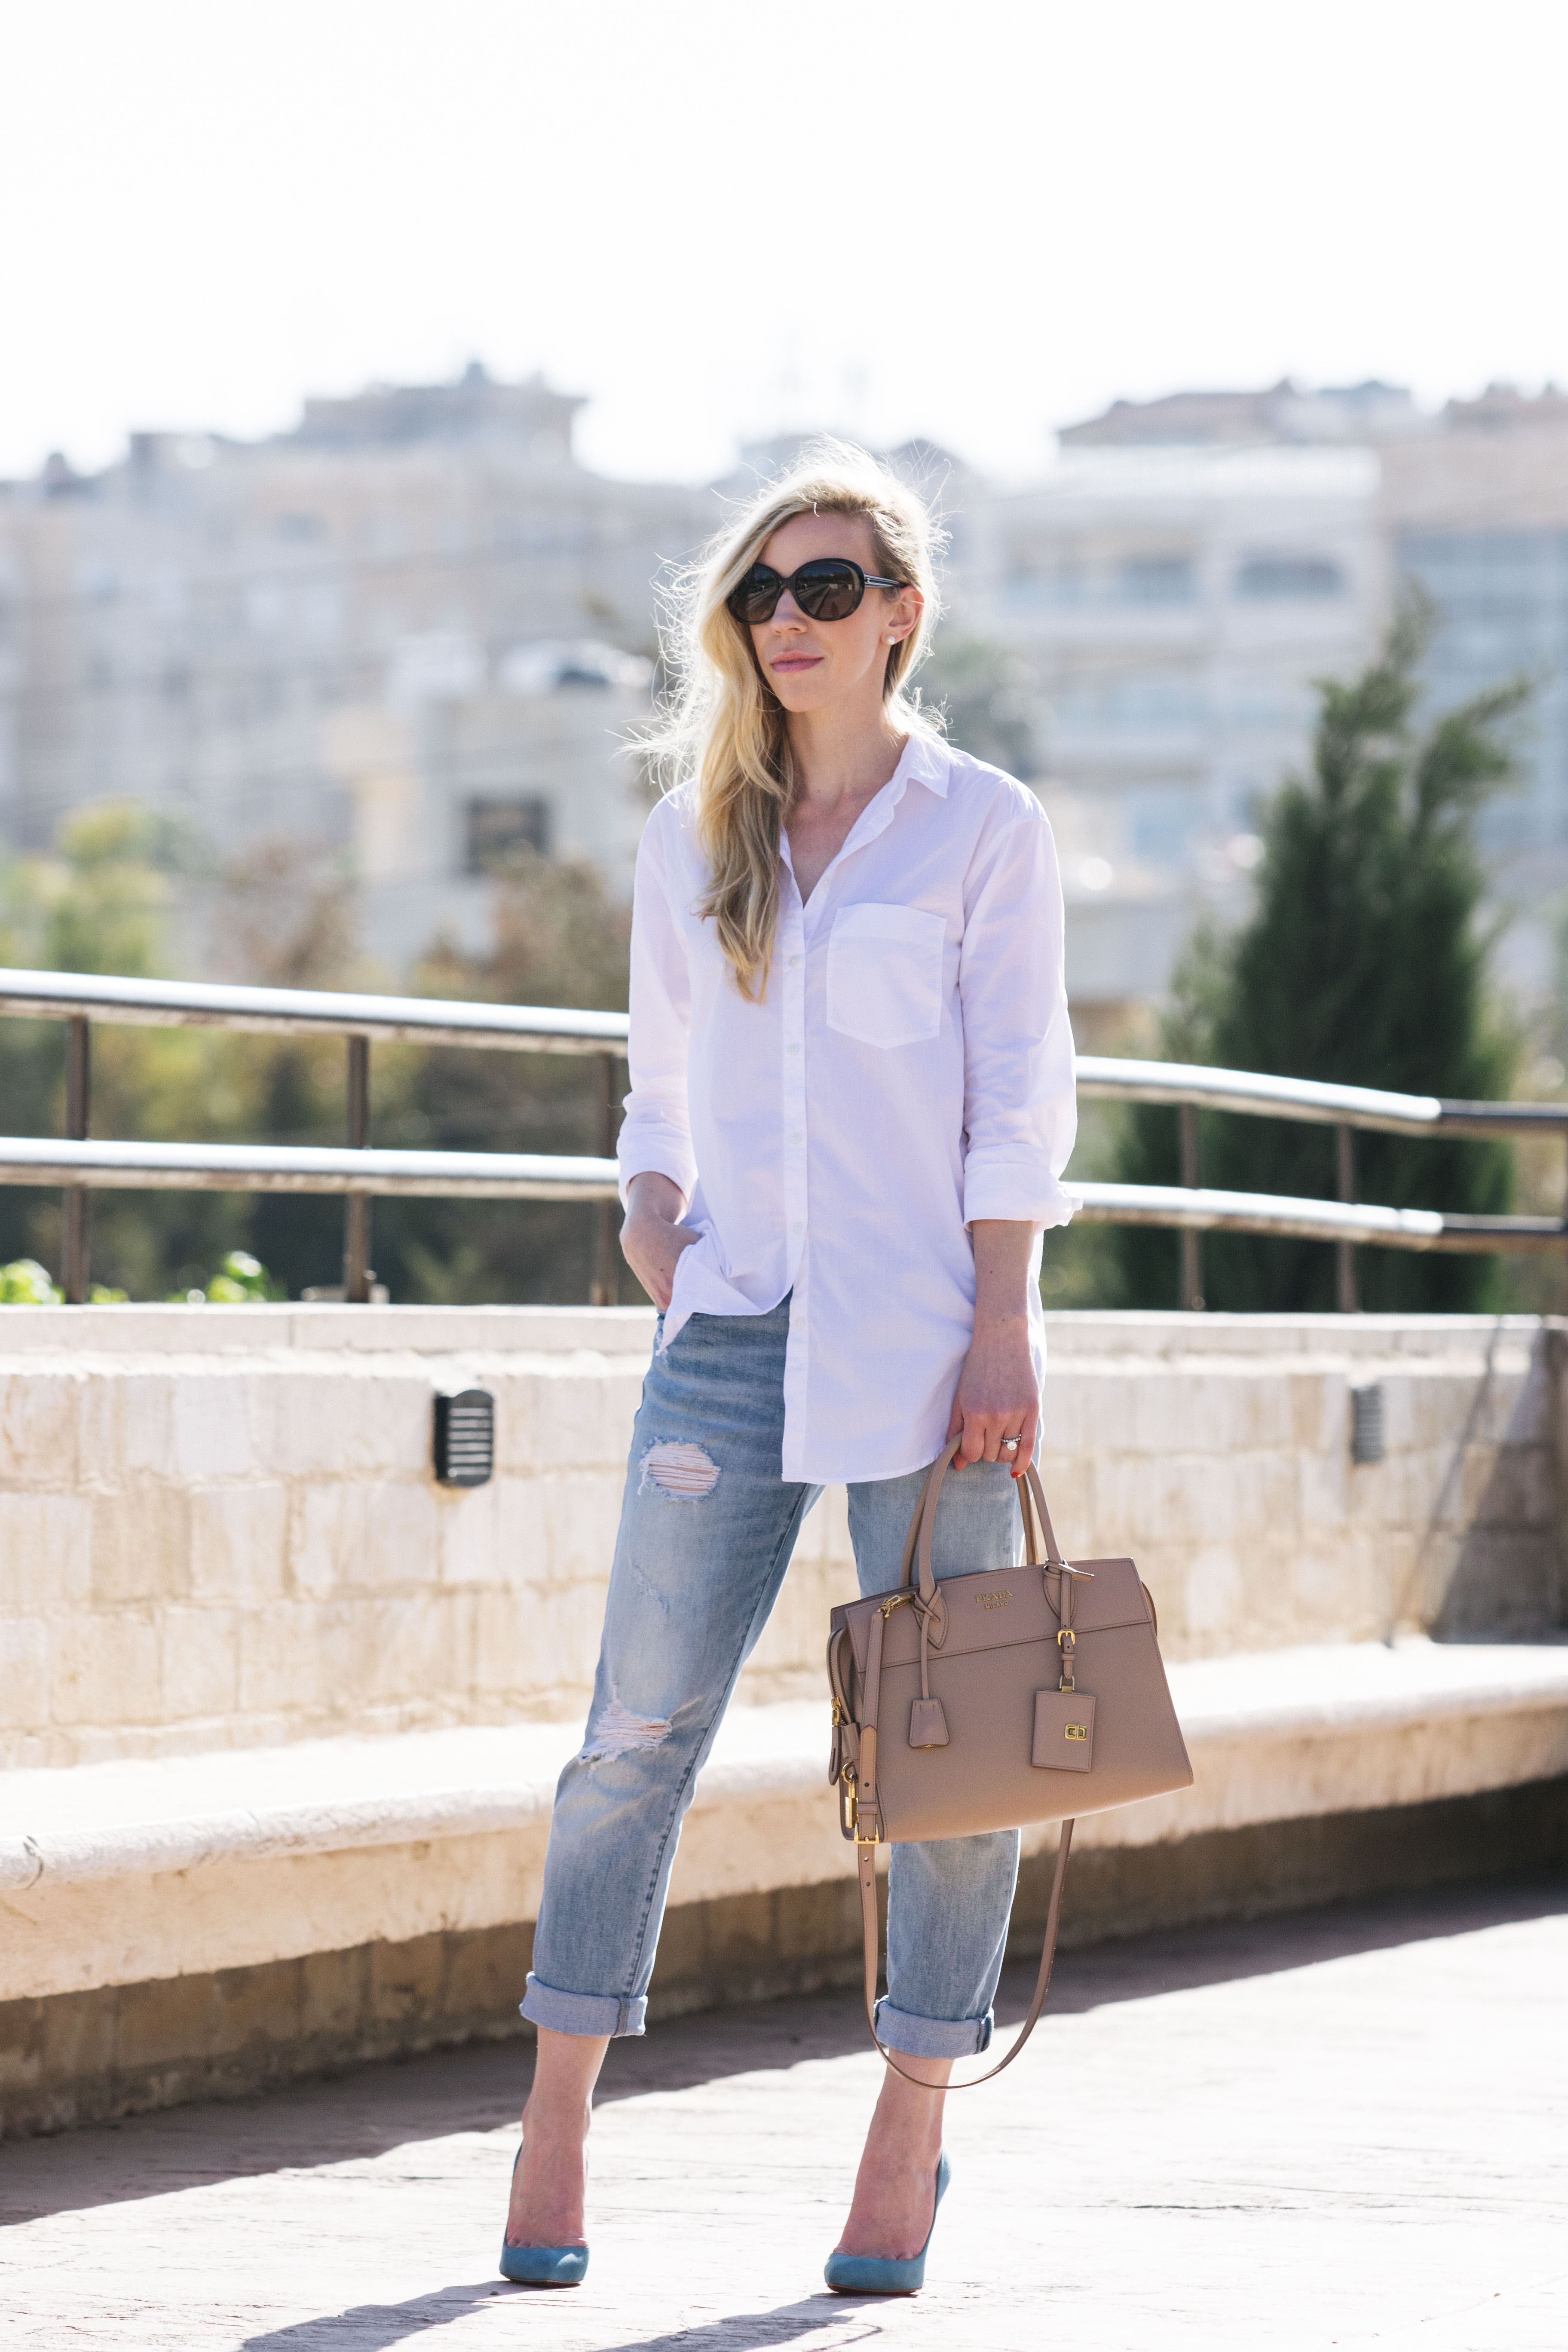 Dress up your boyfriend - A White Button Down Has Become My Go To For Simple Yet Chic Outfits There Are So Many Ways You Can Change Up Your Look With A Basic Button Down